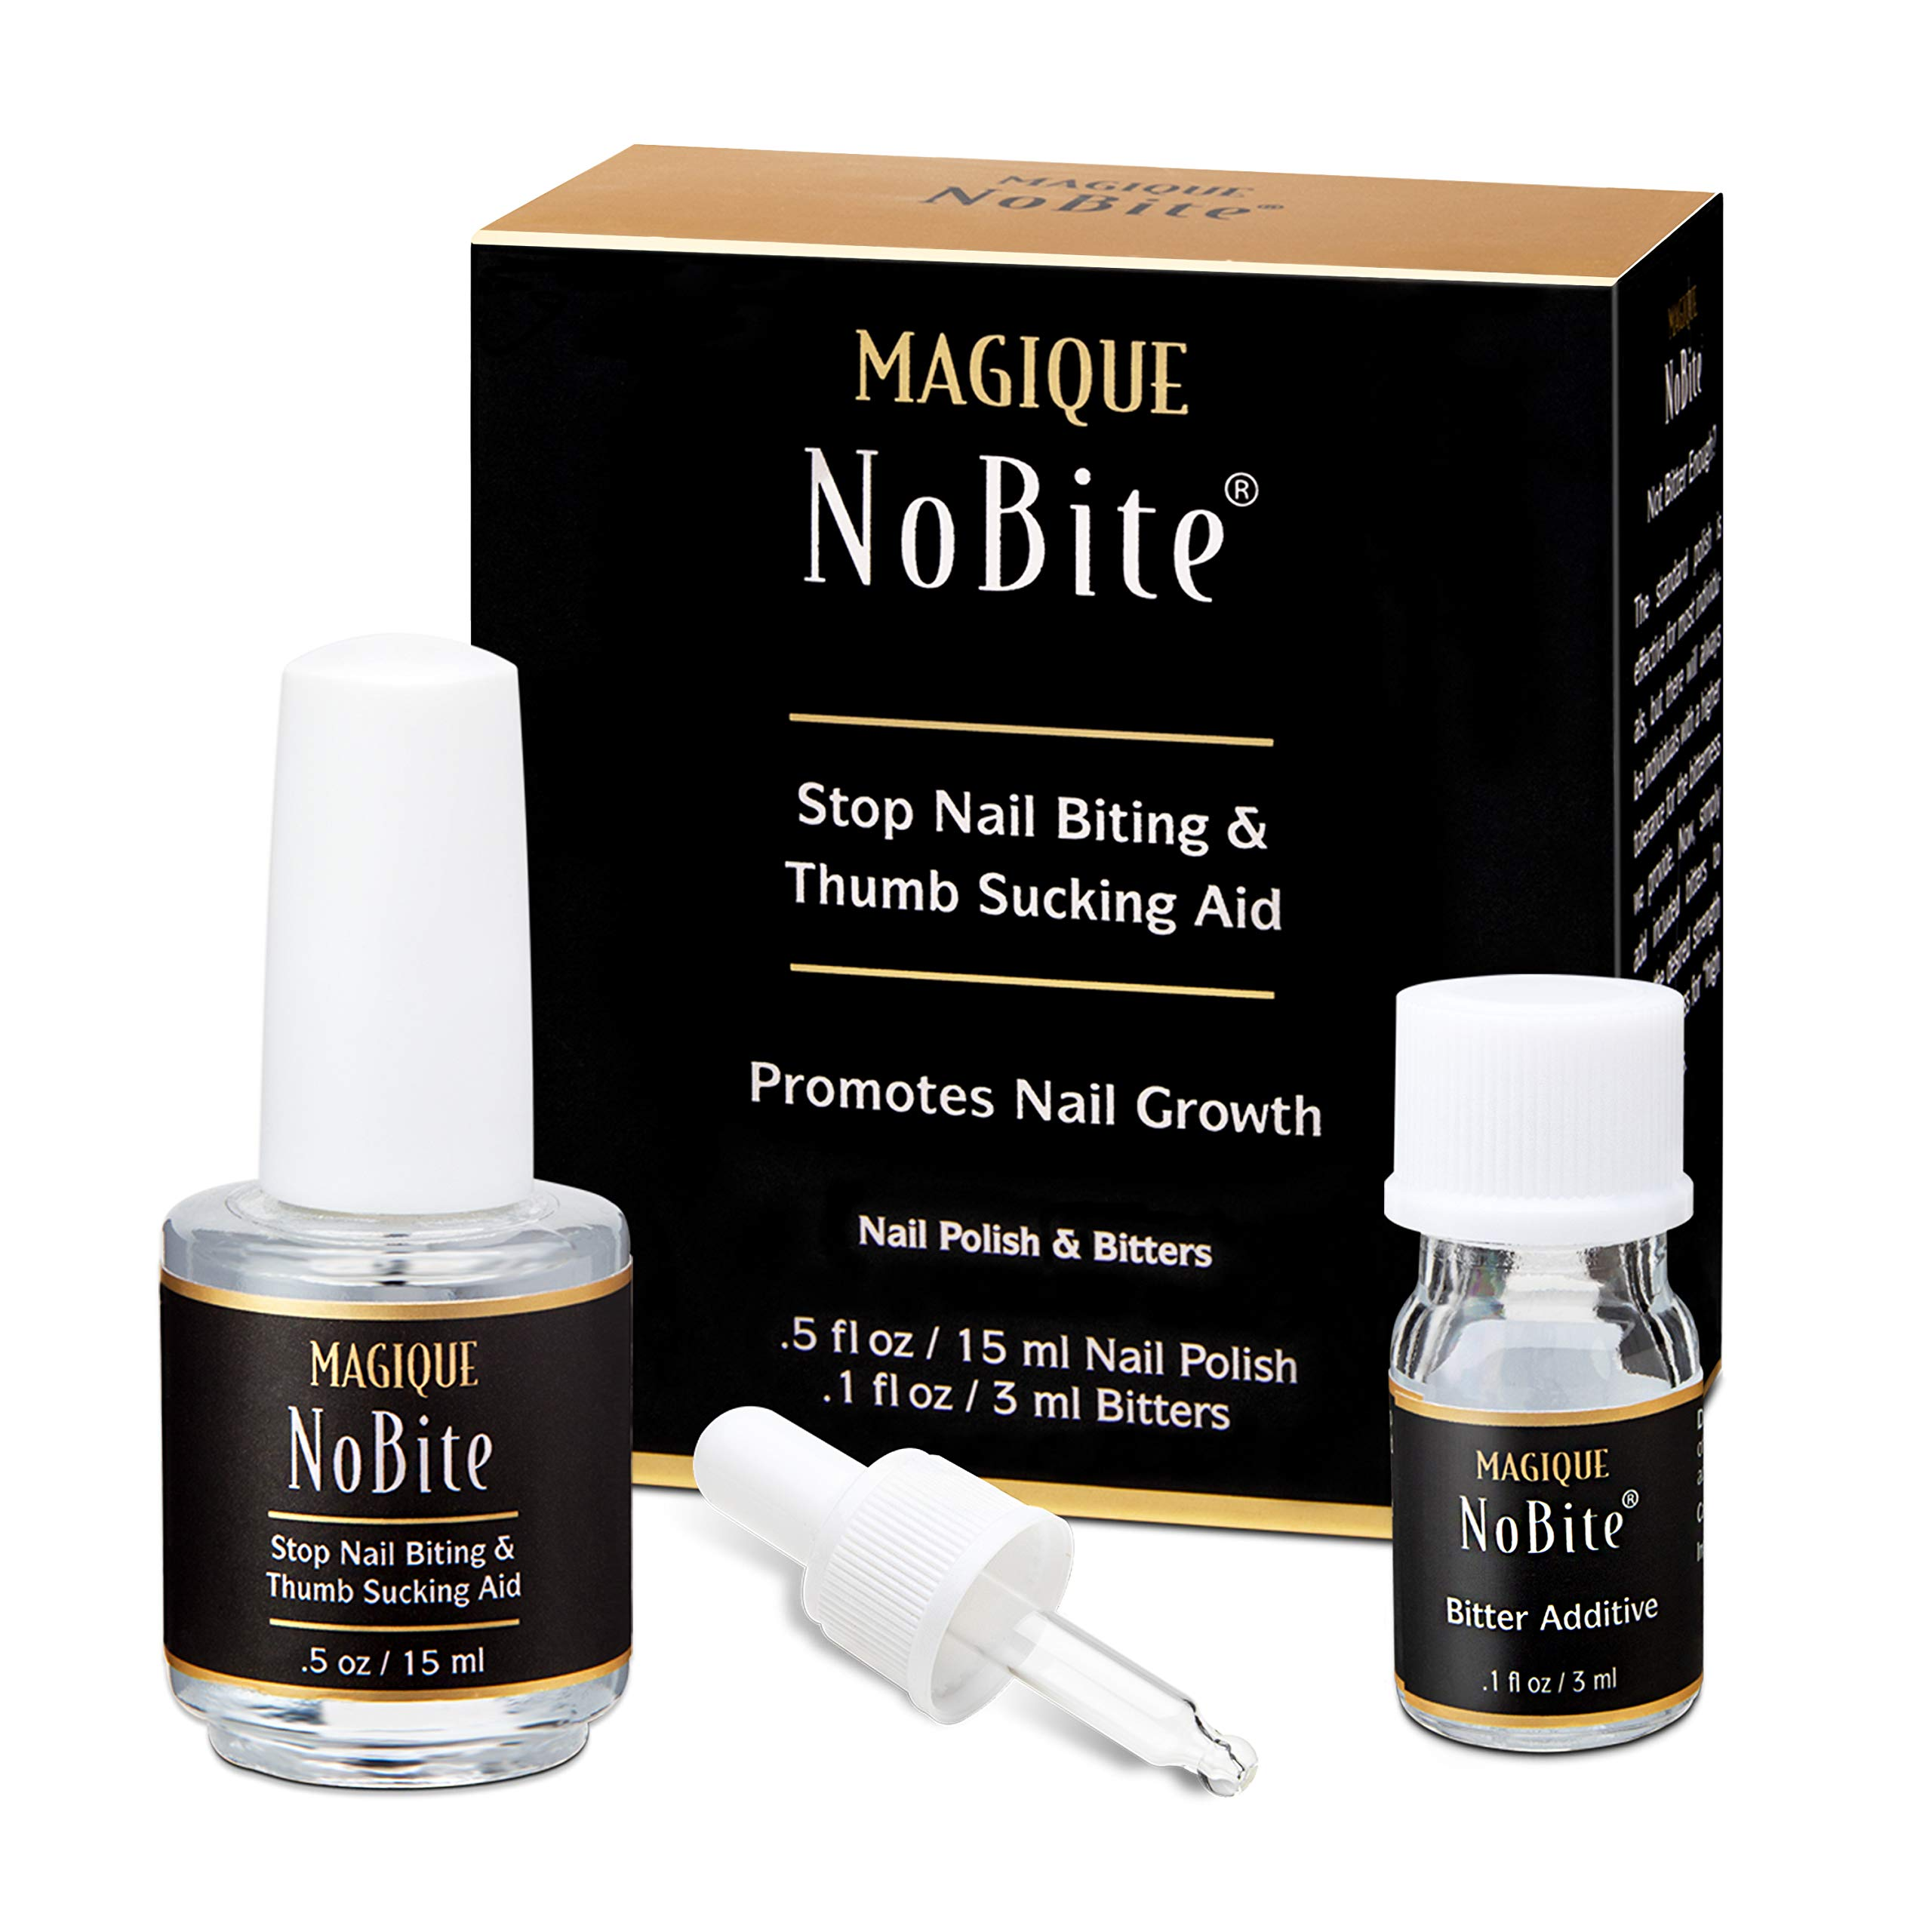 Nail Biting Treatment For Kids & Adults - Thumb Sucking Stop - No Bite Nail Polish - Finger Sucking Stop - Stop Nail Biting - Prevent Nail Biting - Nail Biting Stop - Magique NoBite, 0.5 Fl Oz